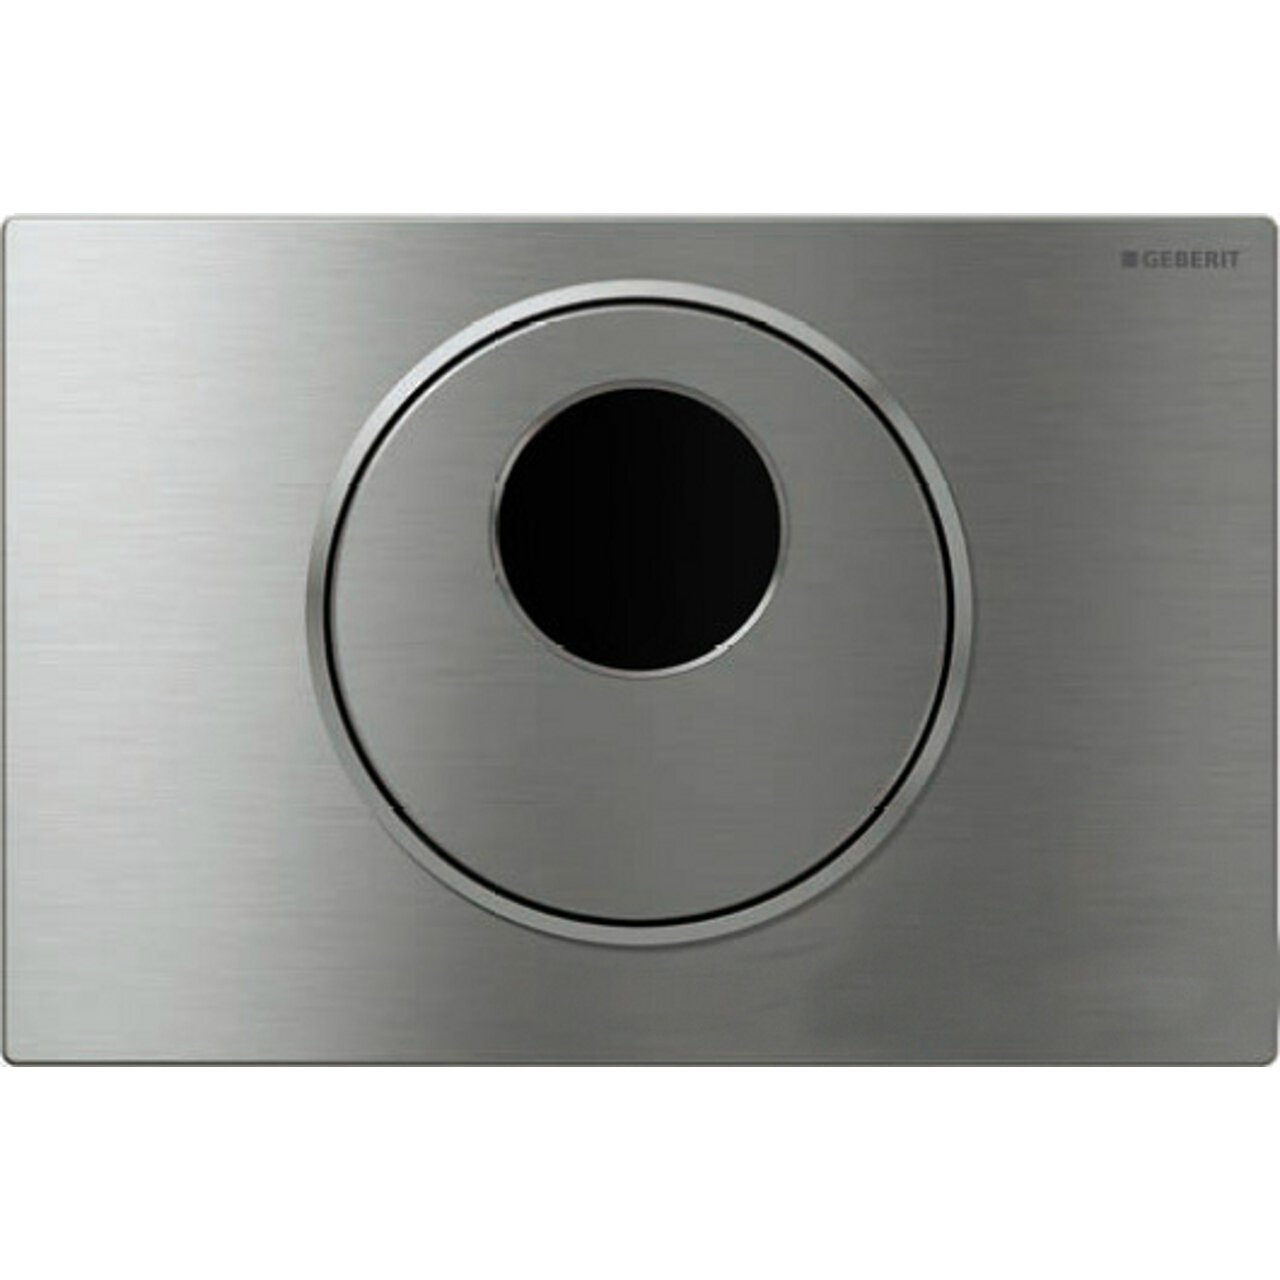 Geberit 115.890.SN.5 Sigma10 AC Hands Free Flush Plate, Stainless Steel by Geberit (Image #1)